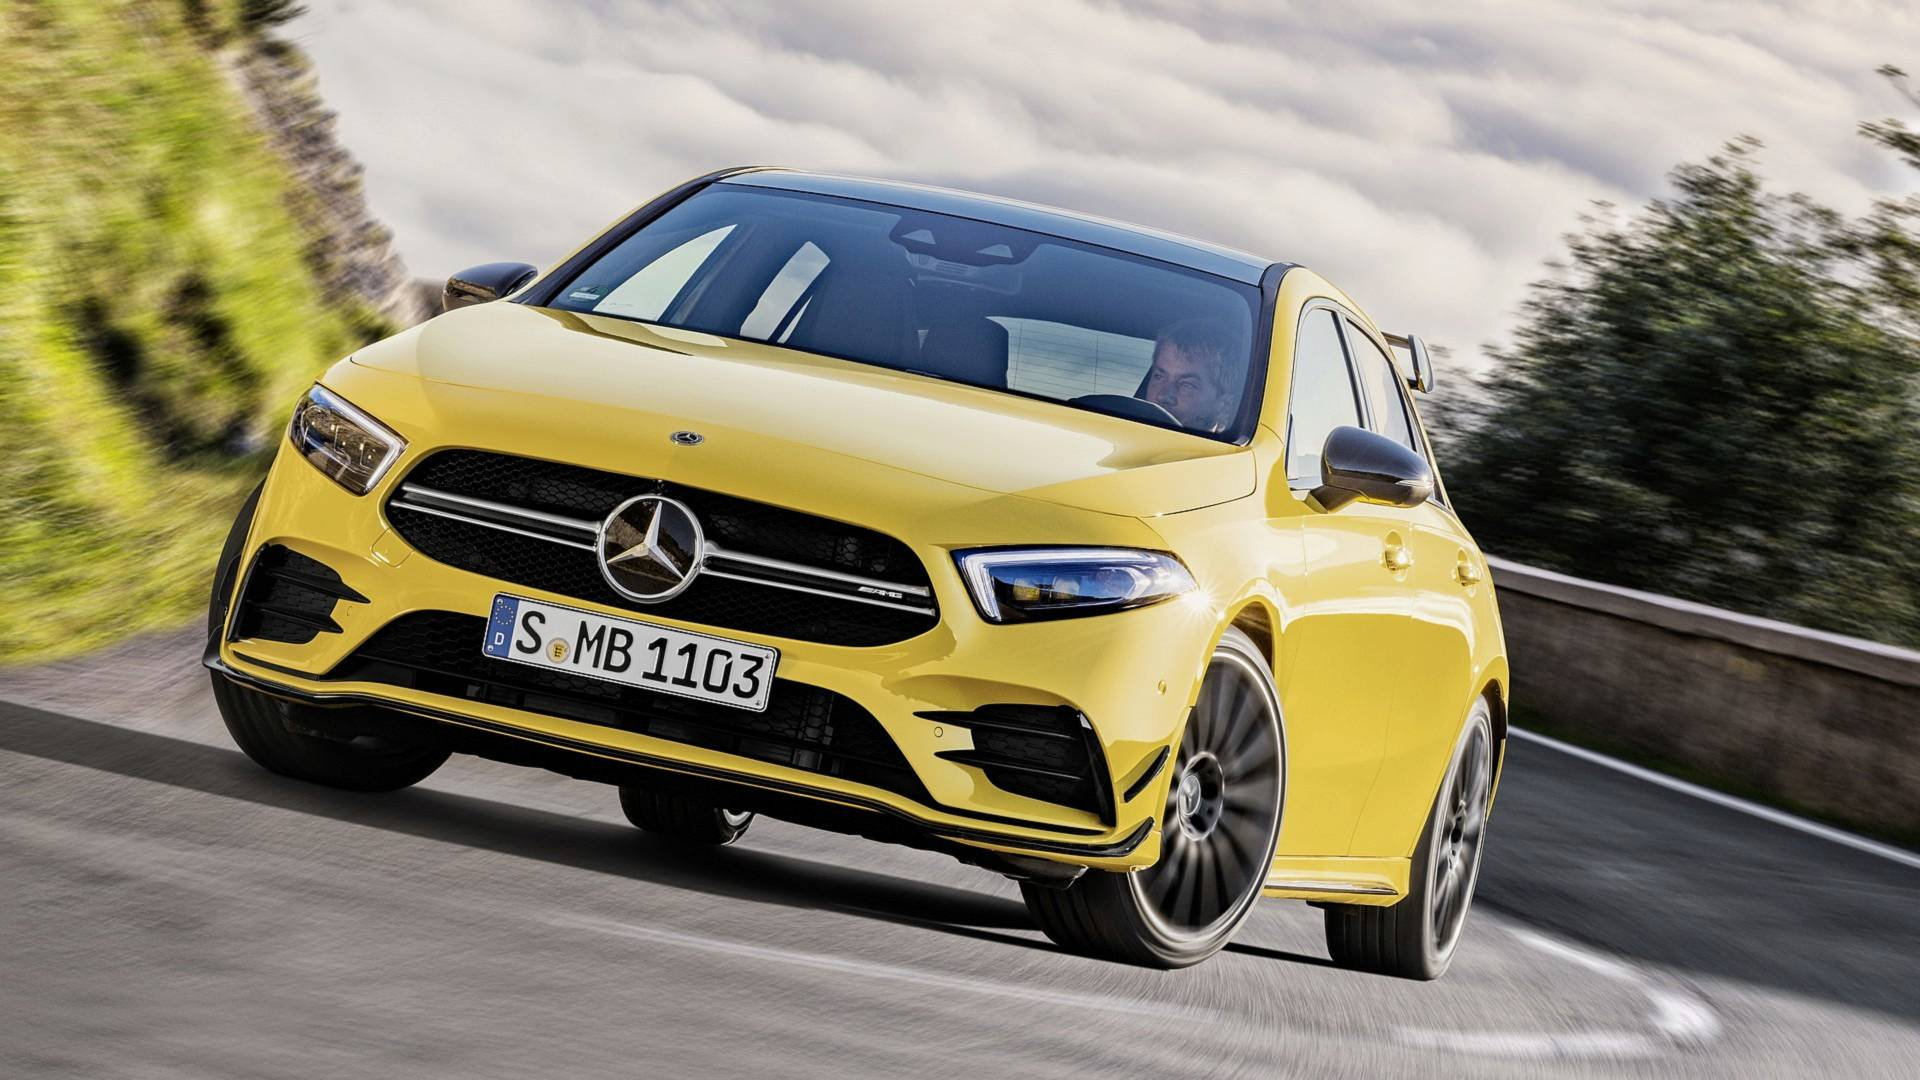 2019 Mercedes AMG A35 4Matic Goes Official With 302 Horsepower 1920x1080